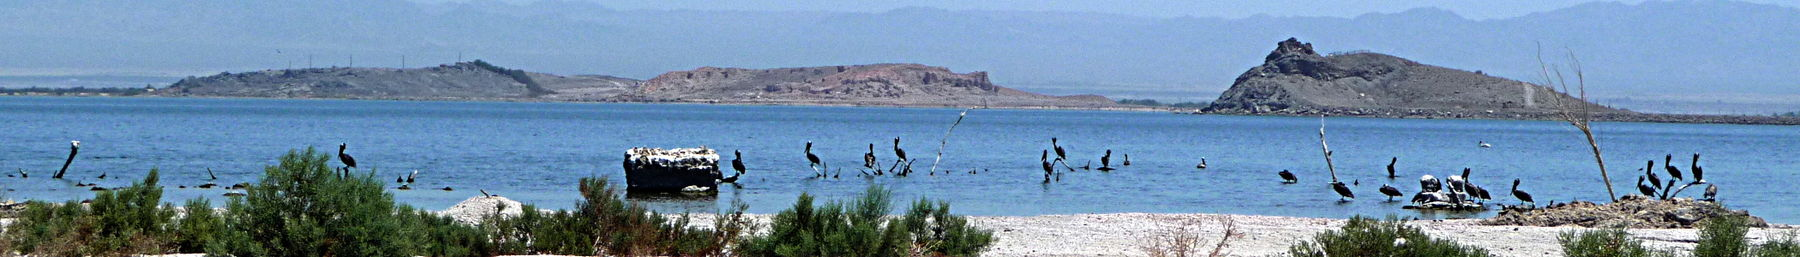 The Salton Sea which dominates the landscape of Imperial County.